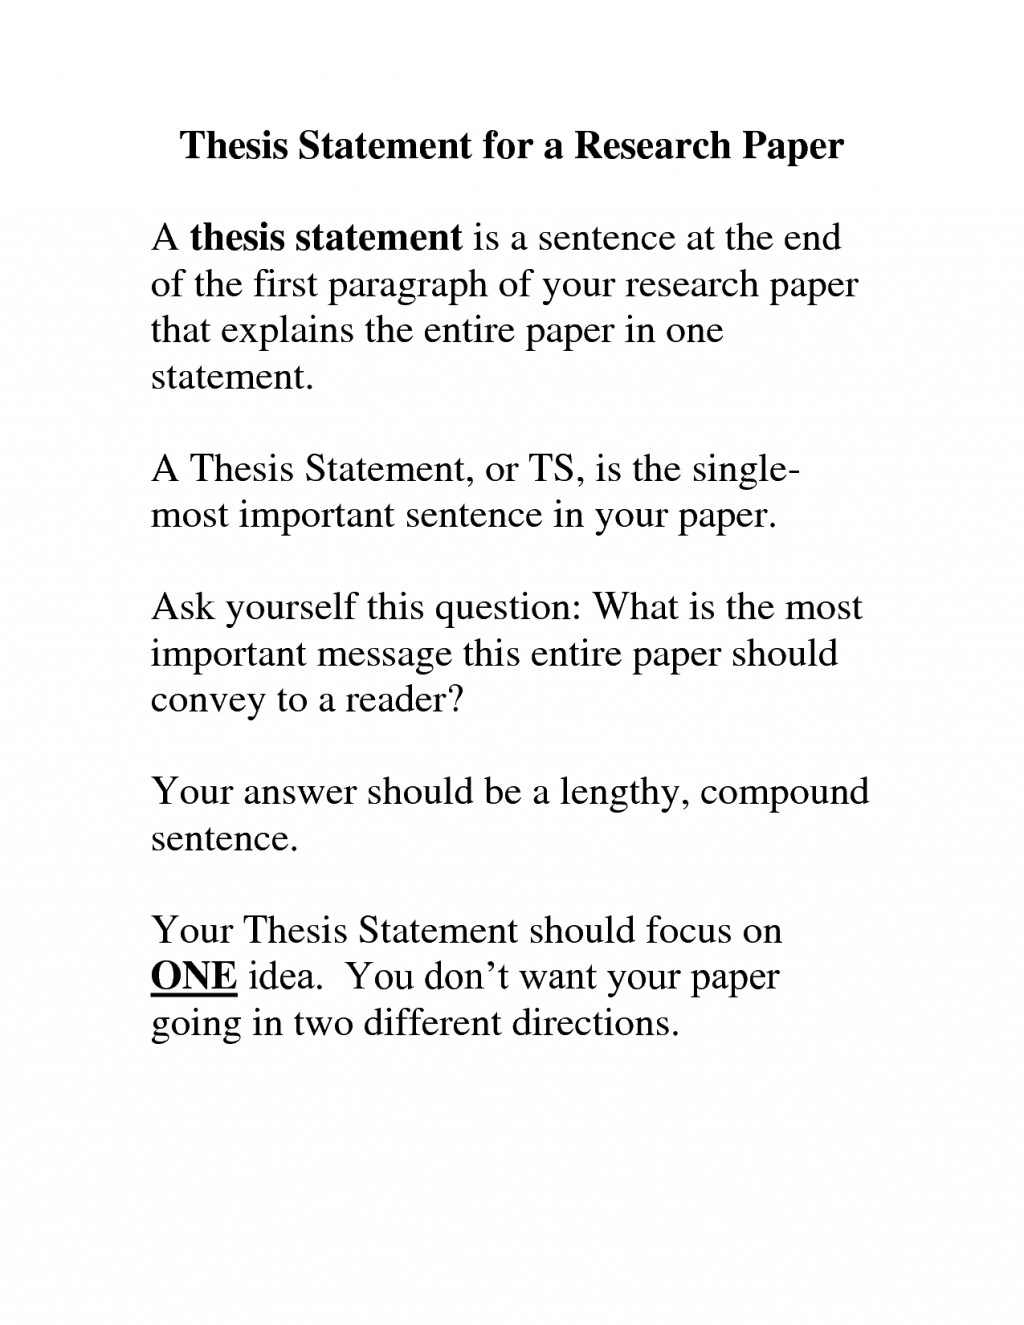 002 Research Paper Thesis Examples For Papers Of Statements Outstanding Statement History Good Informative Large